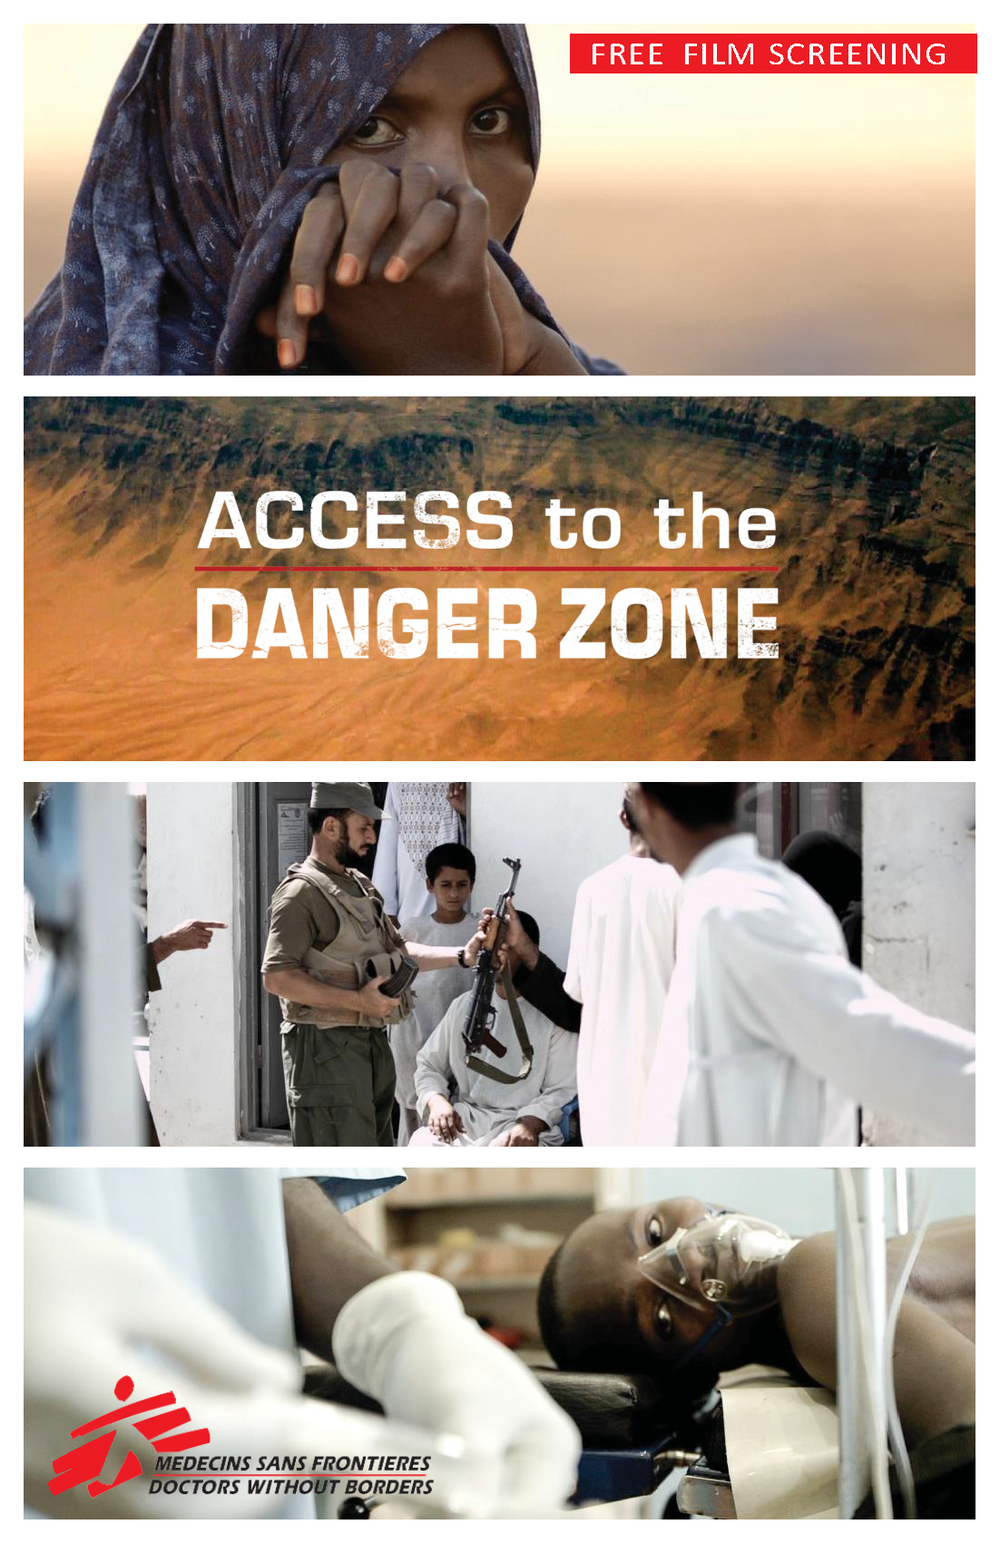 Access to the danger zone postcard_Page_1.png